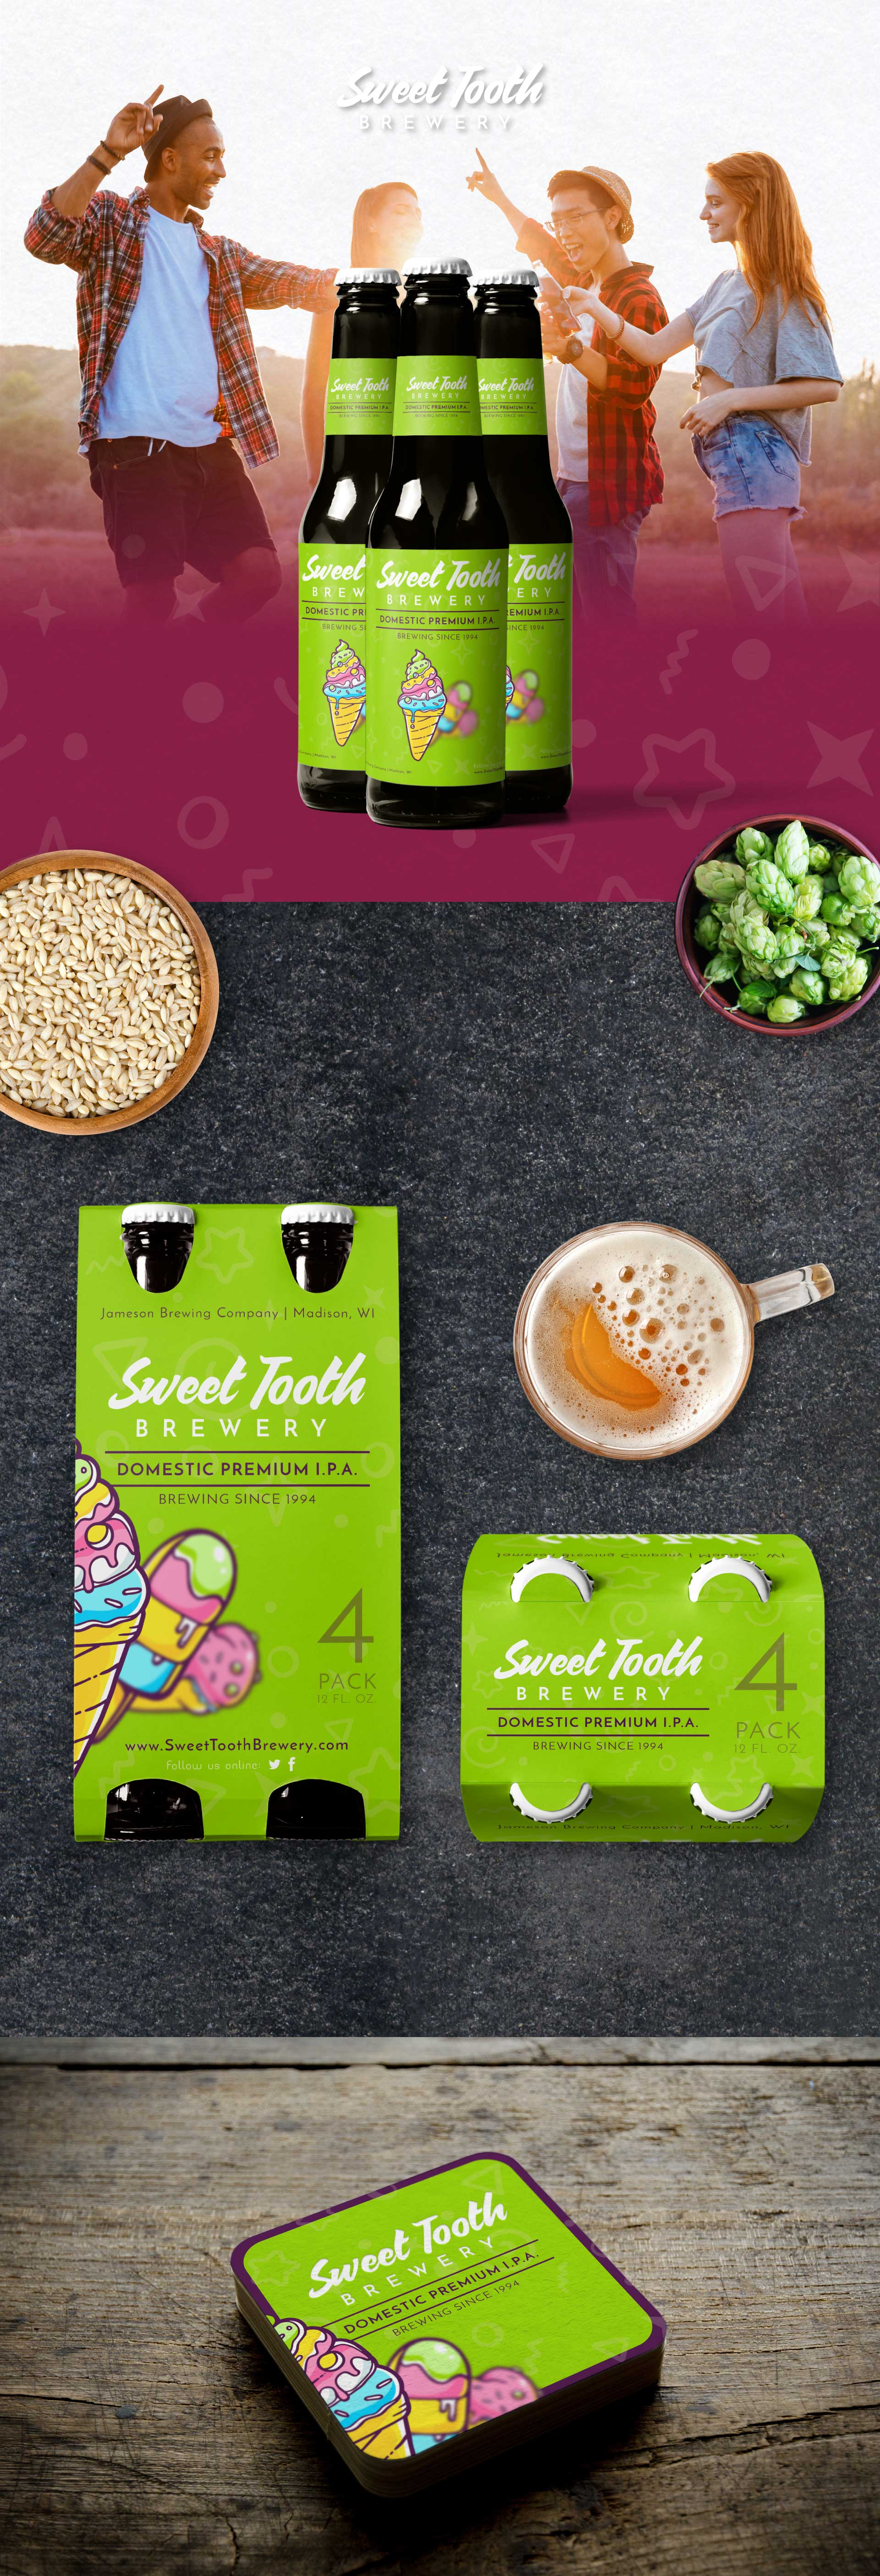 sweet tooth brewery sifono4 branding package design